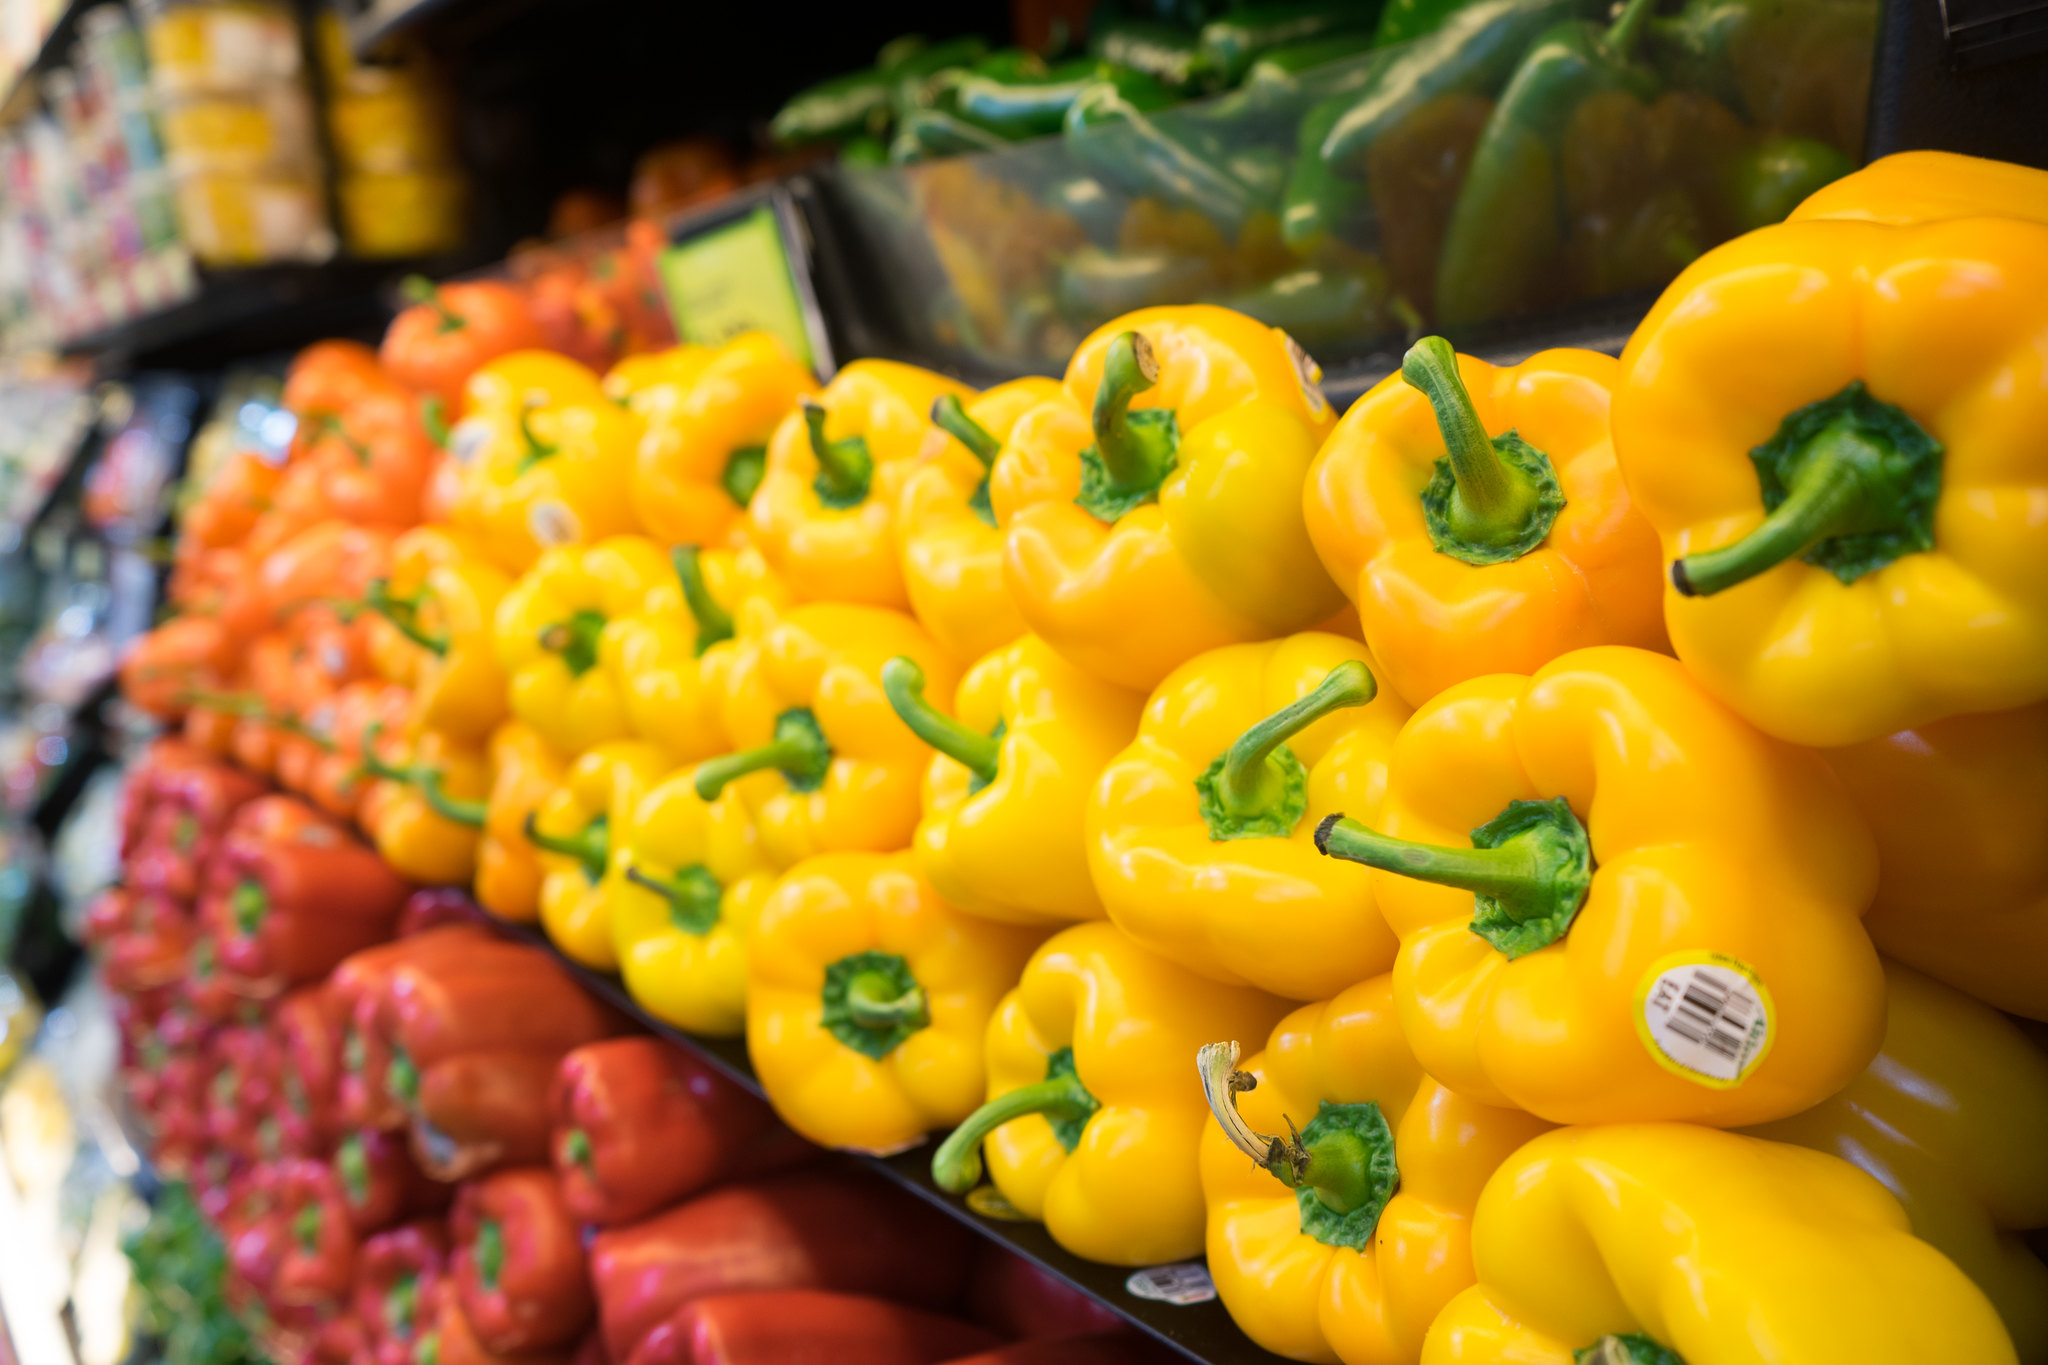 Studies repeatedly demonstrate that at least five servings of produce can significantly reduce the risk of mortality. Photo credit: Joseph L. Murphy/Iowa Soybean Association